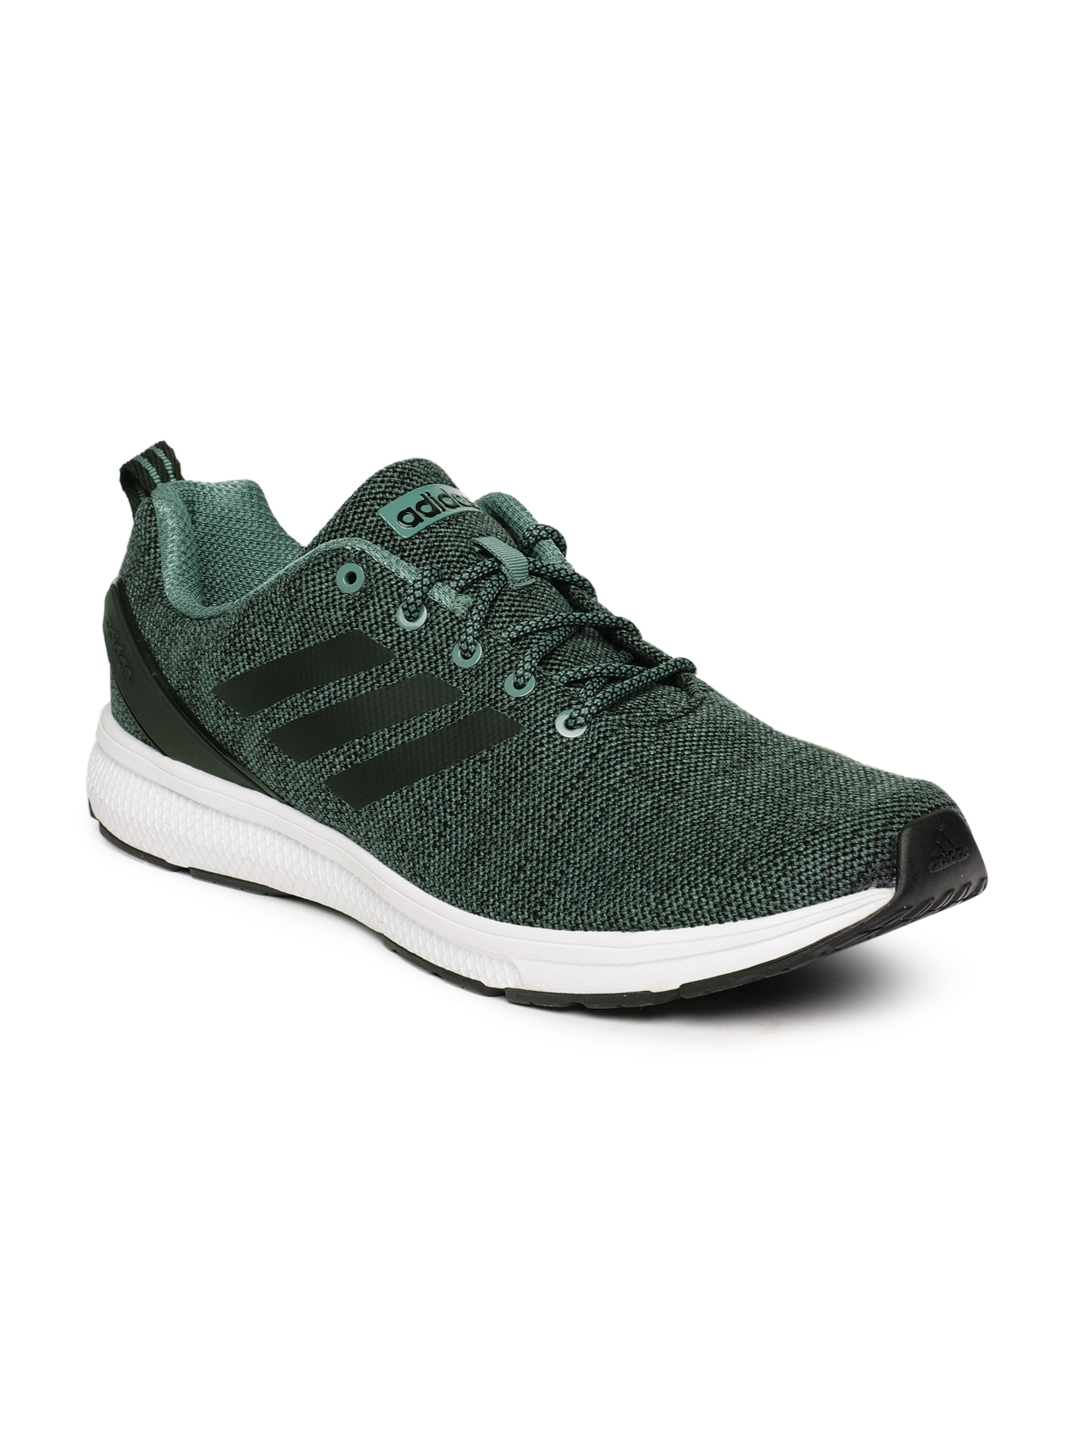 5651f1327efe Buy ADIDAS Men Green Solid Legus 1 M Running Shoes - Sports Shoes ...